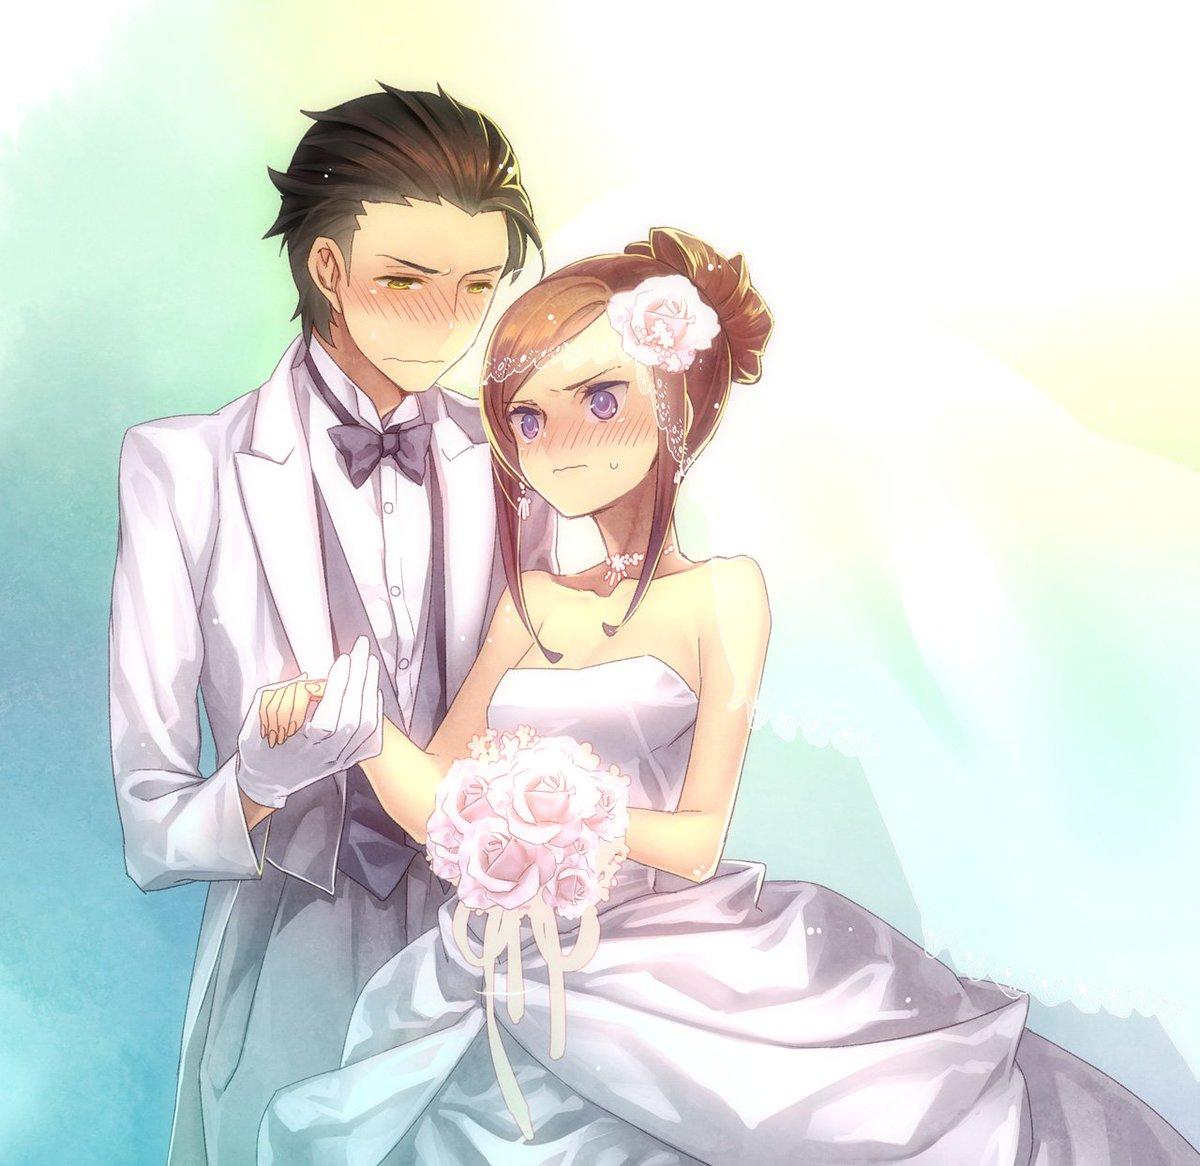 J LIST On Twitter One Of My Hobbies Is Finding Images Anime Characters Getting Married Which Your Favorite Couple Tco KBsVCbmGpa